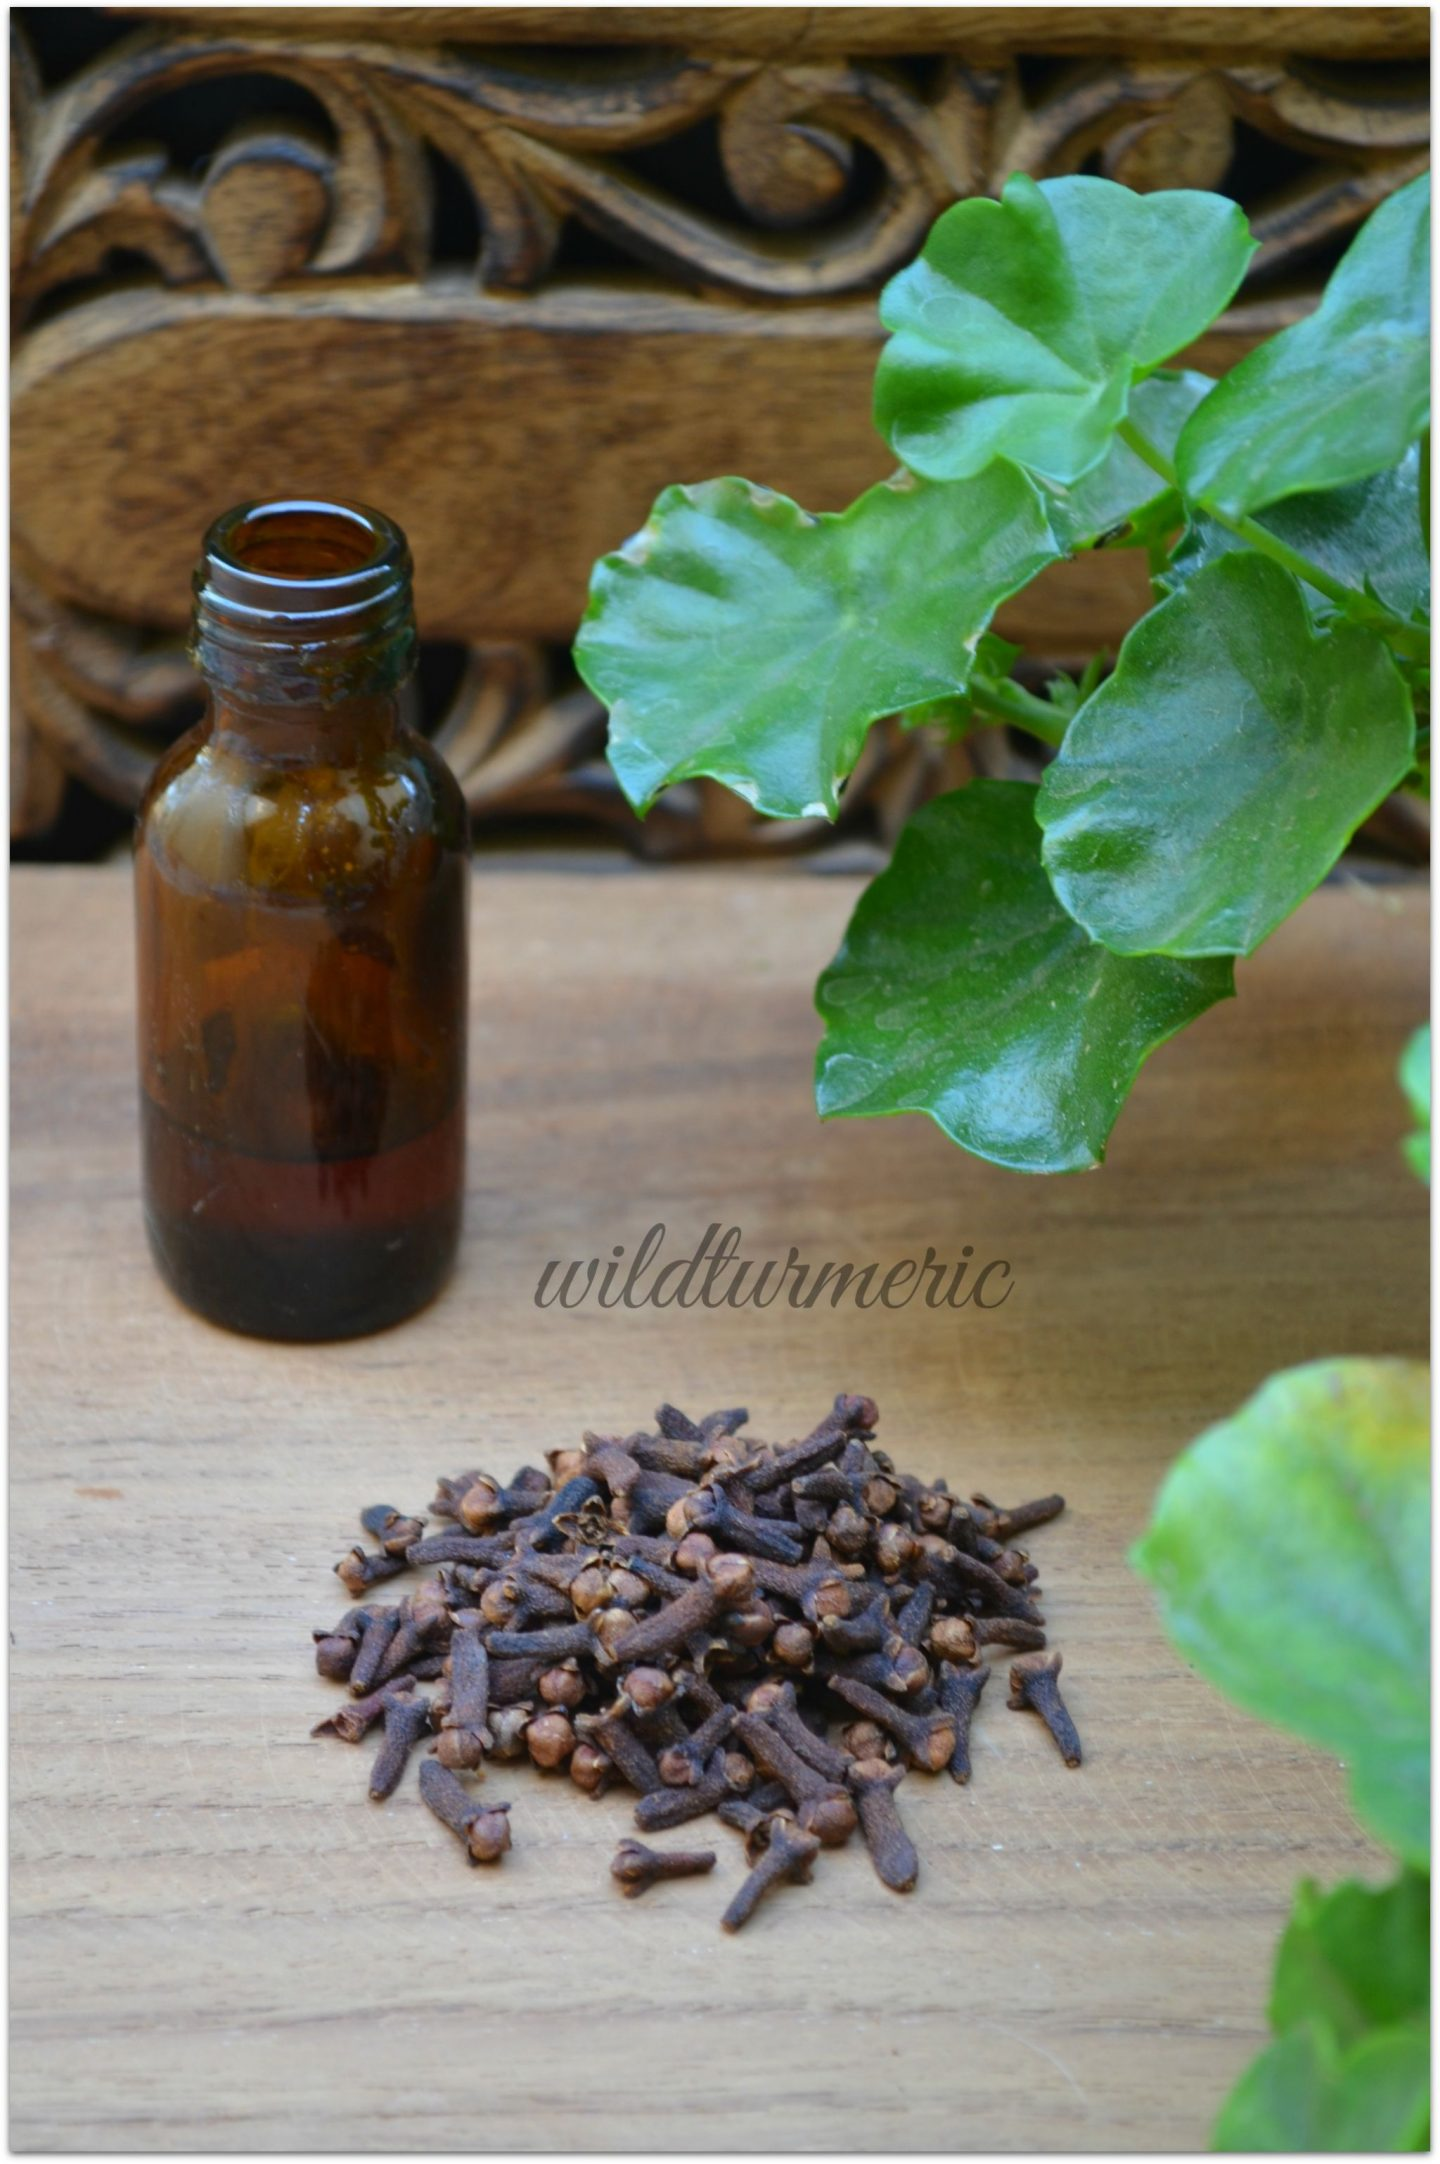 Cloves medicinal uses